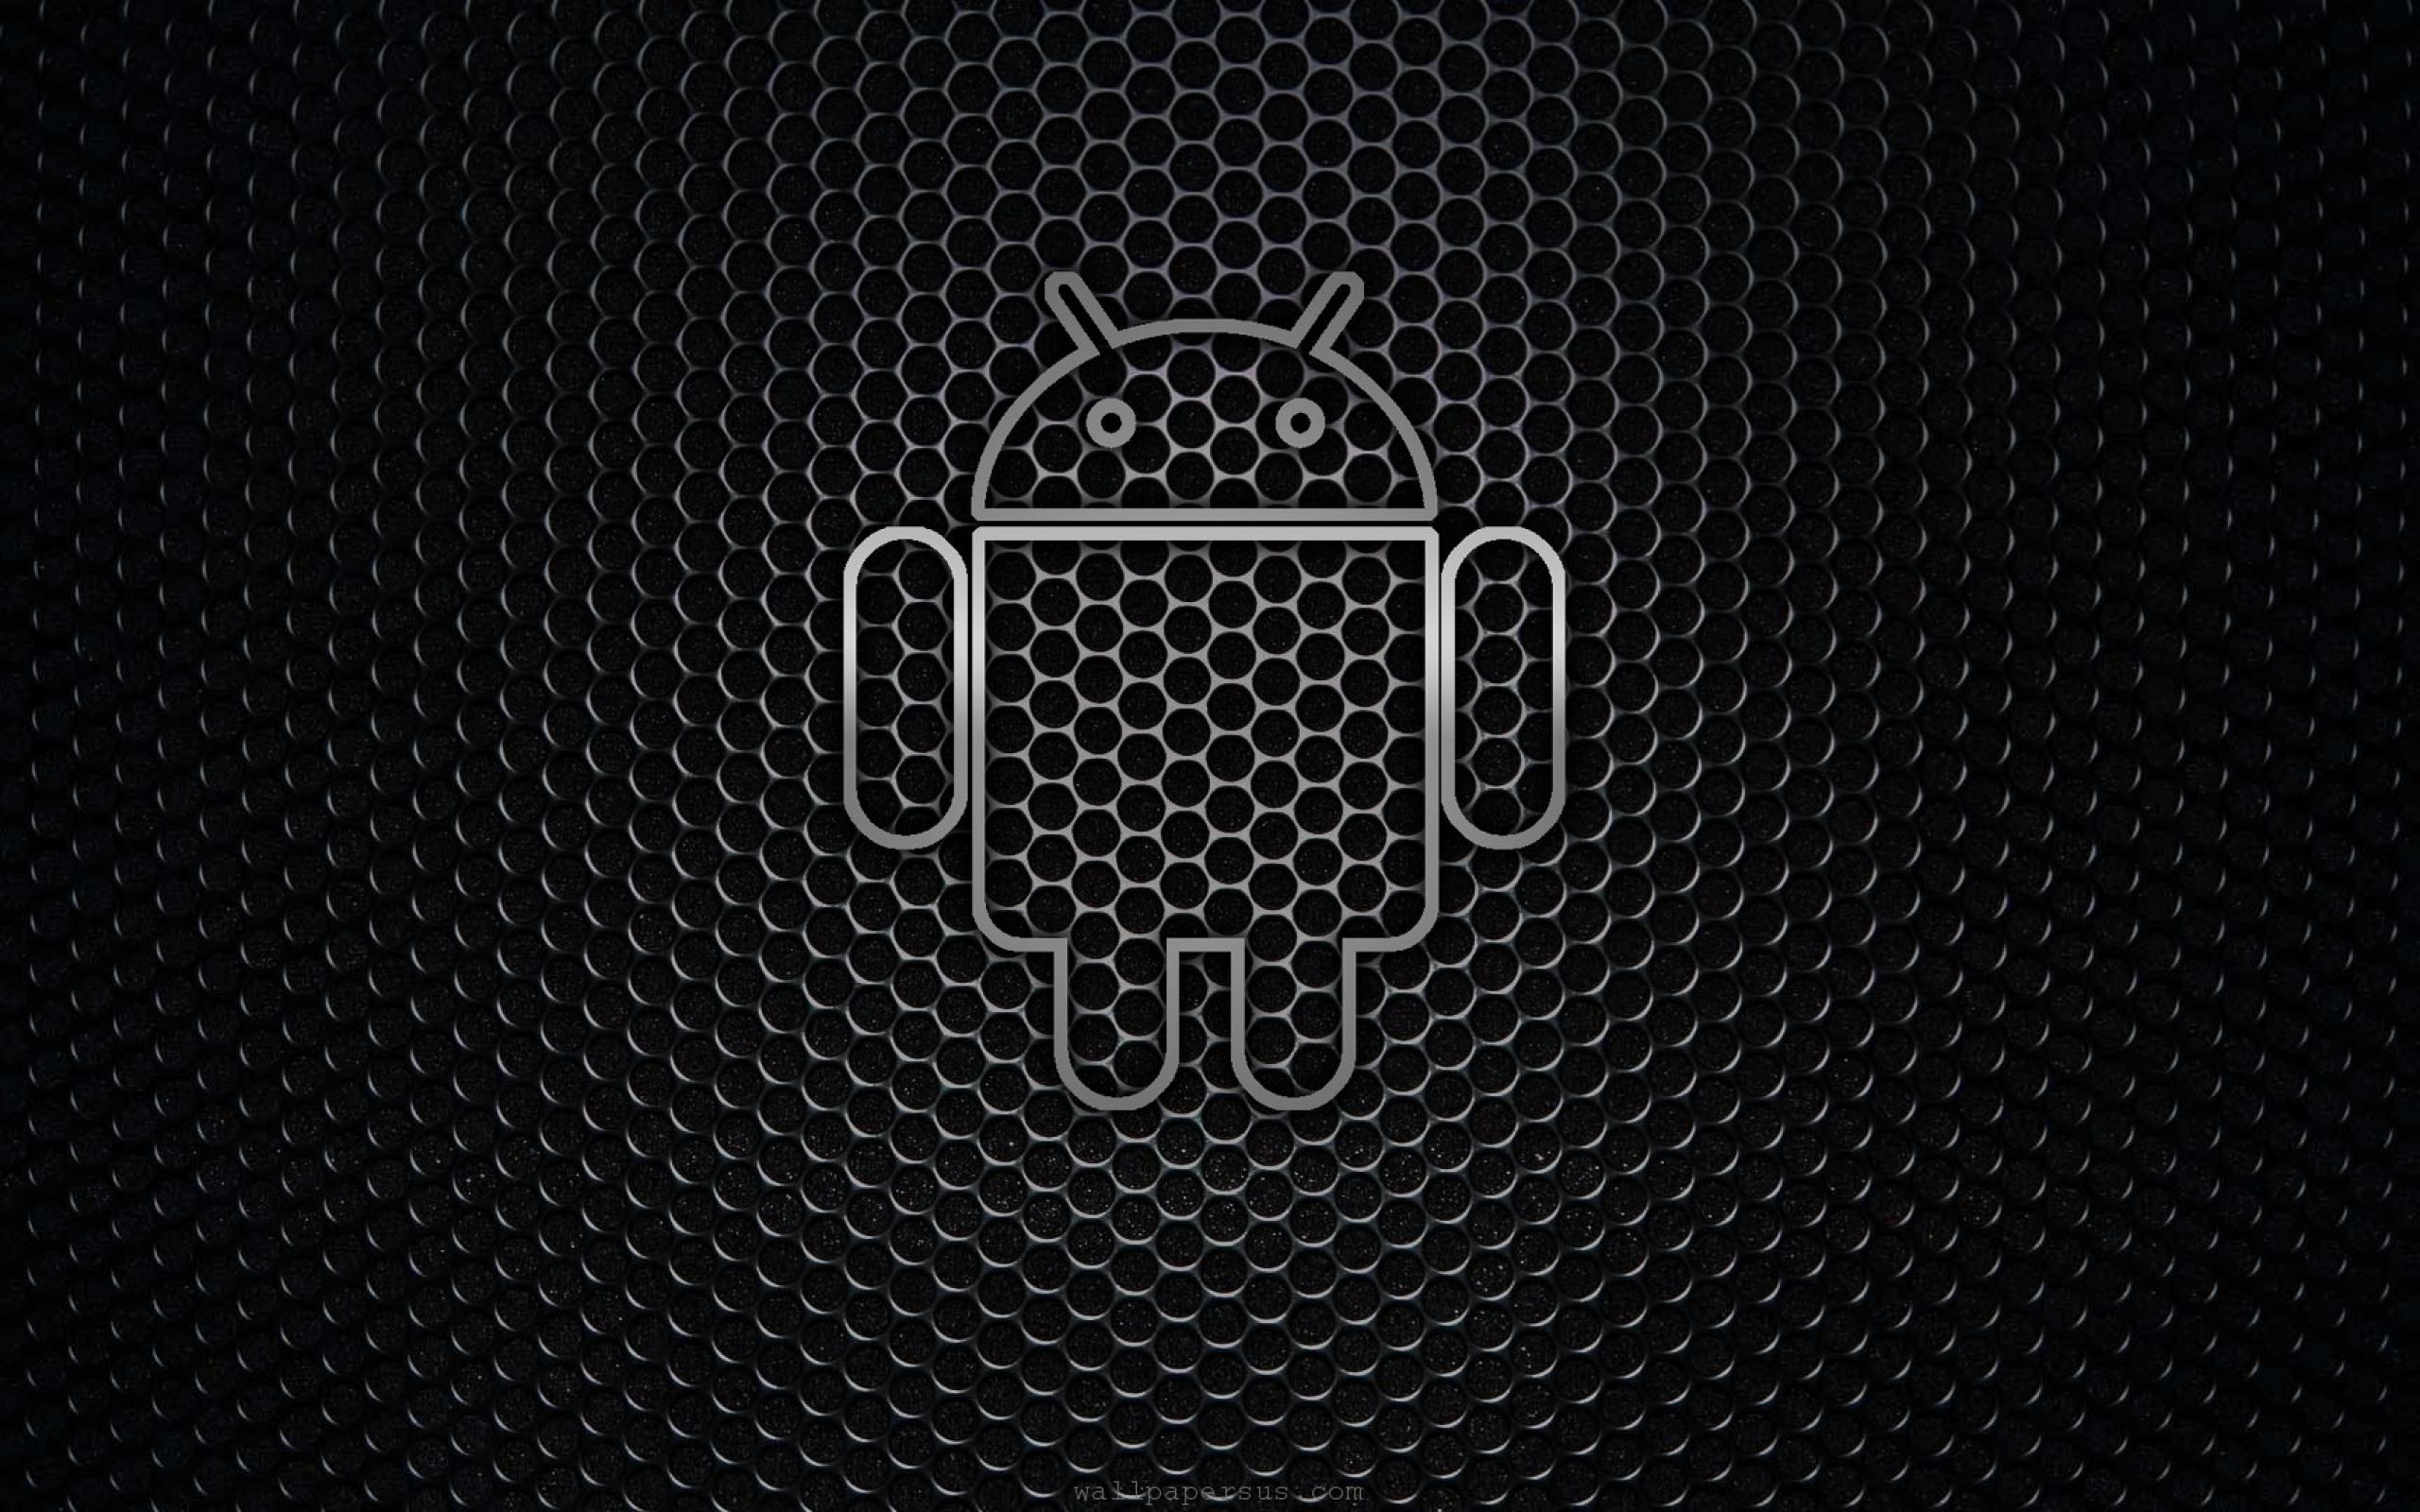 All Black Wallpaper Android Page 1